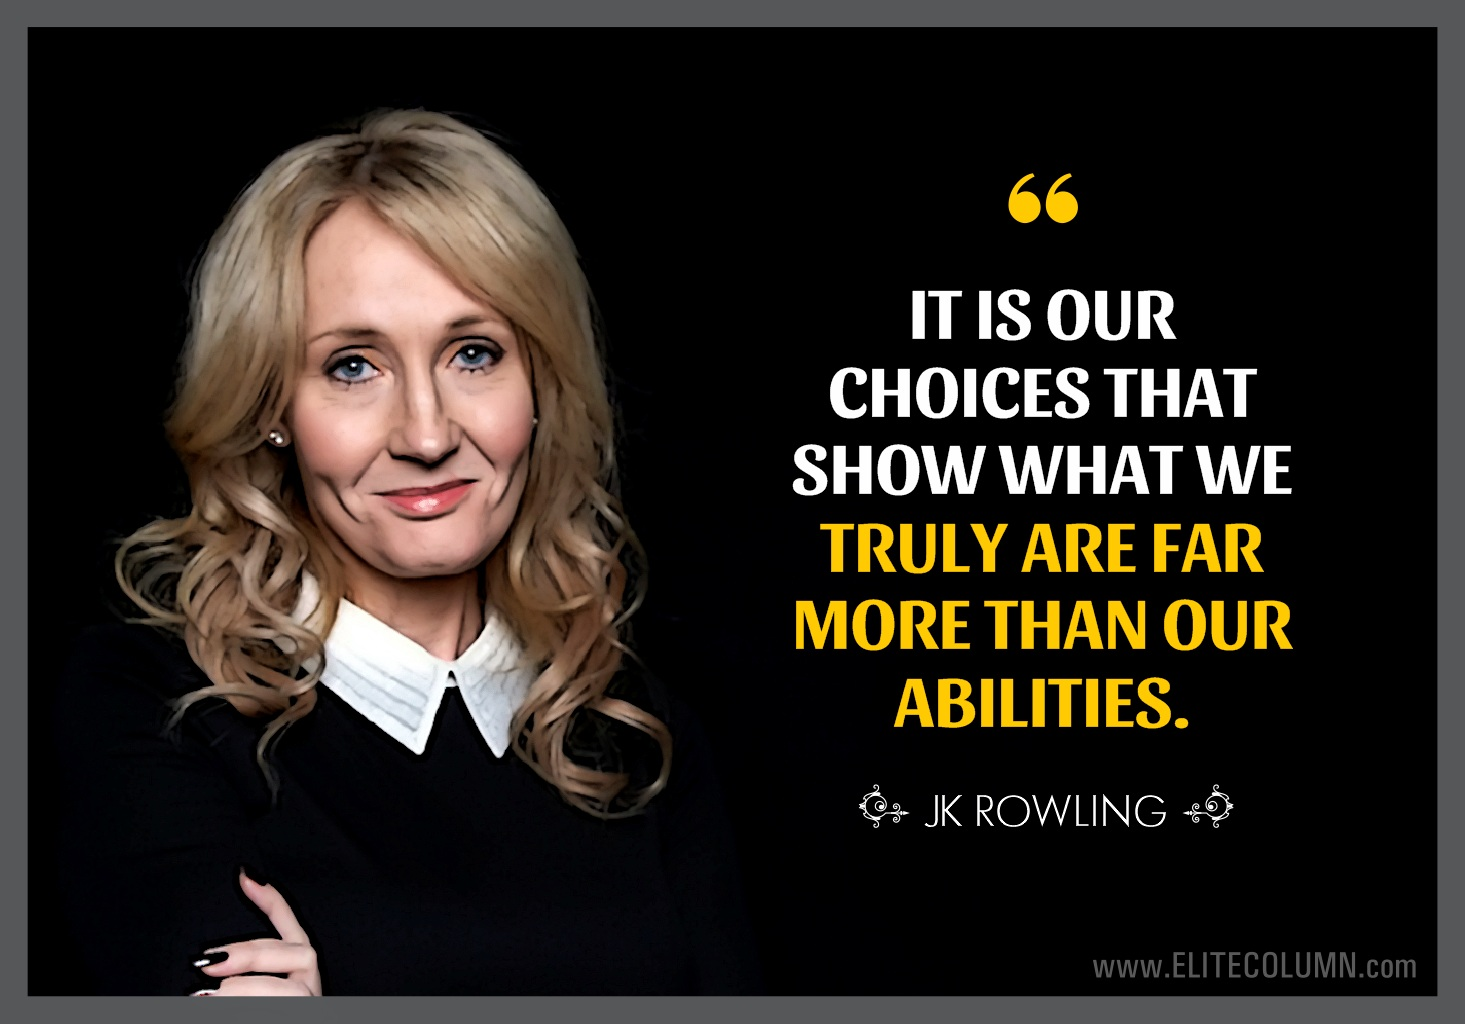 JK Rowling Quotes (1)